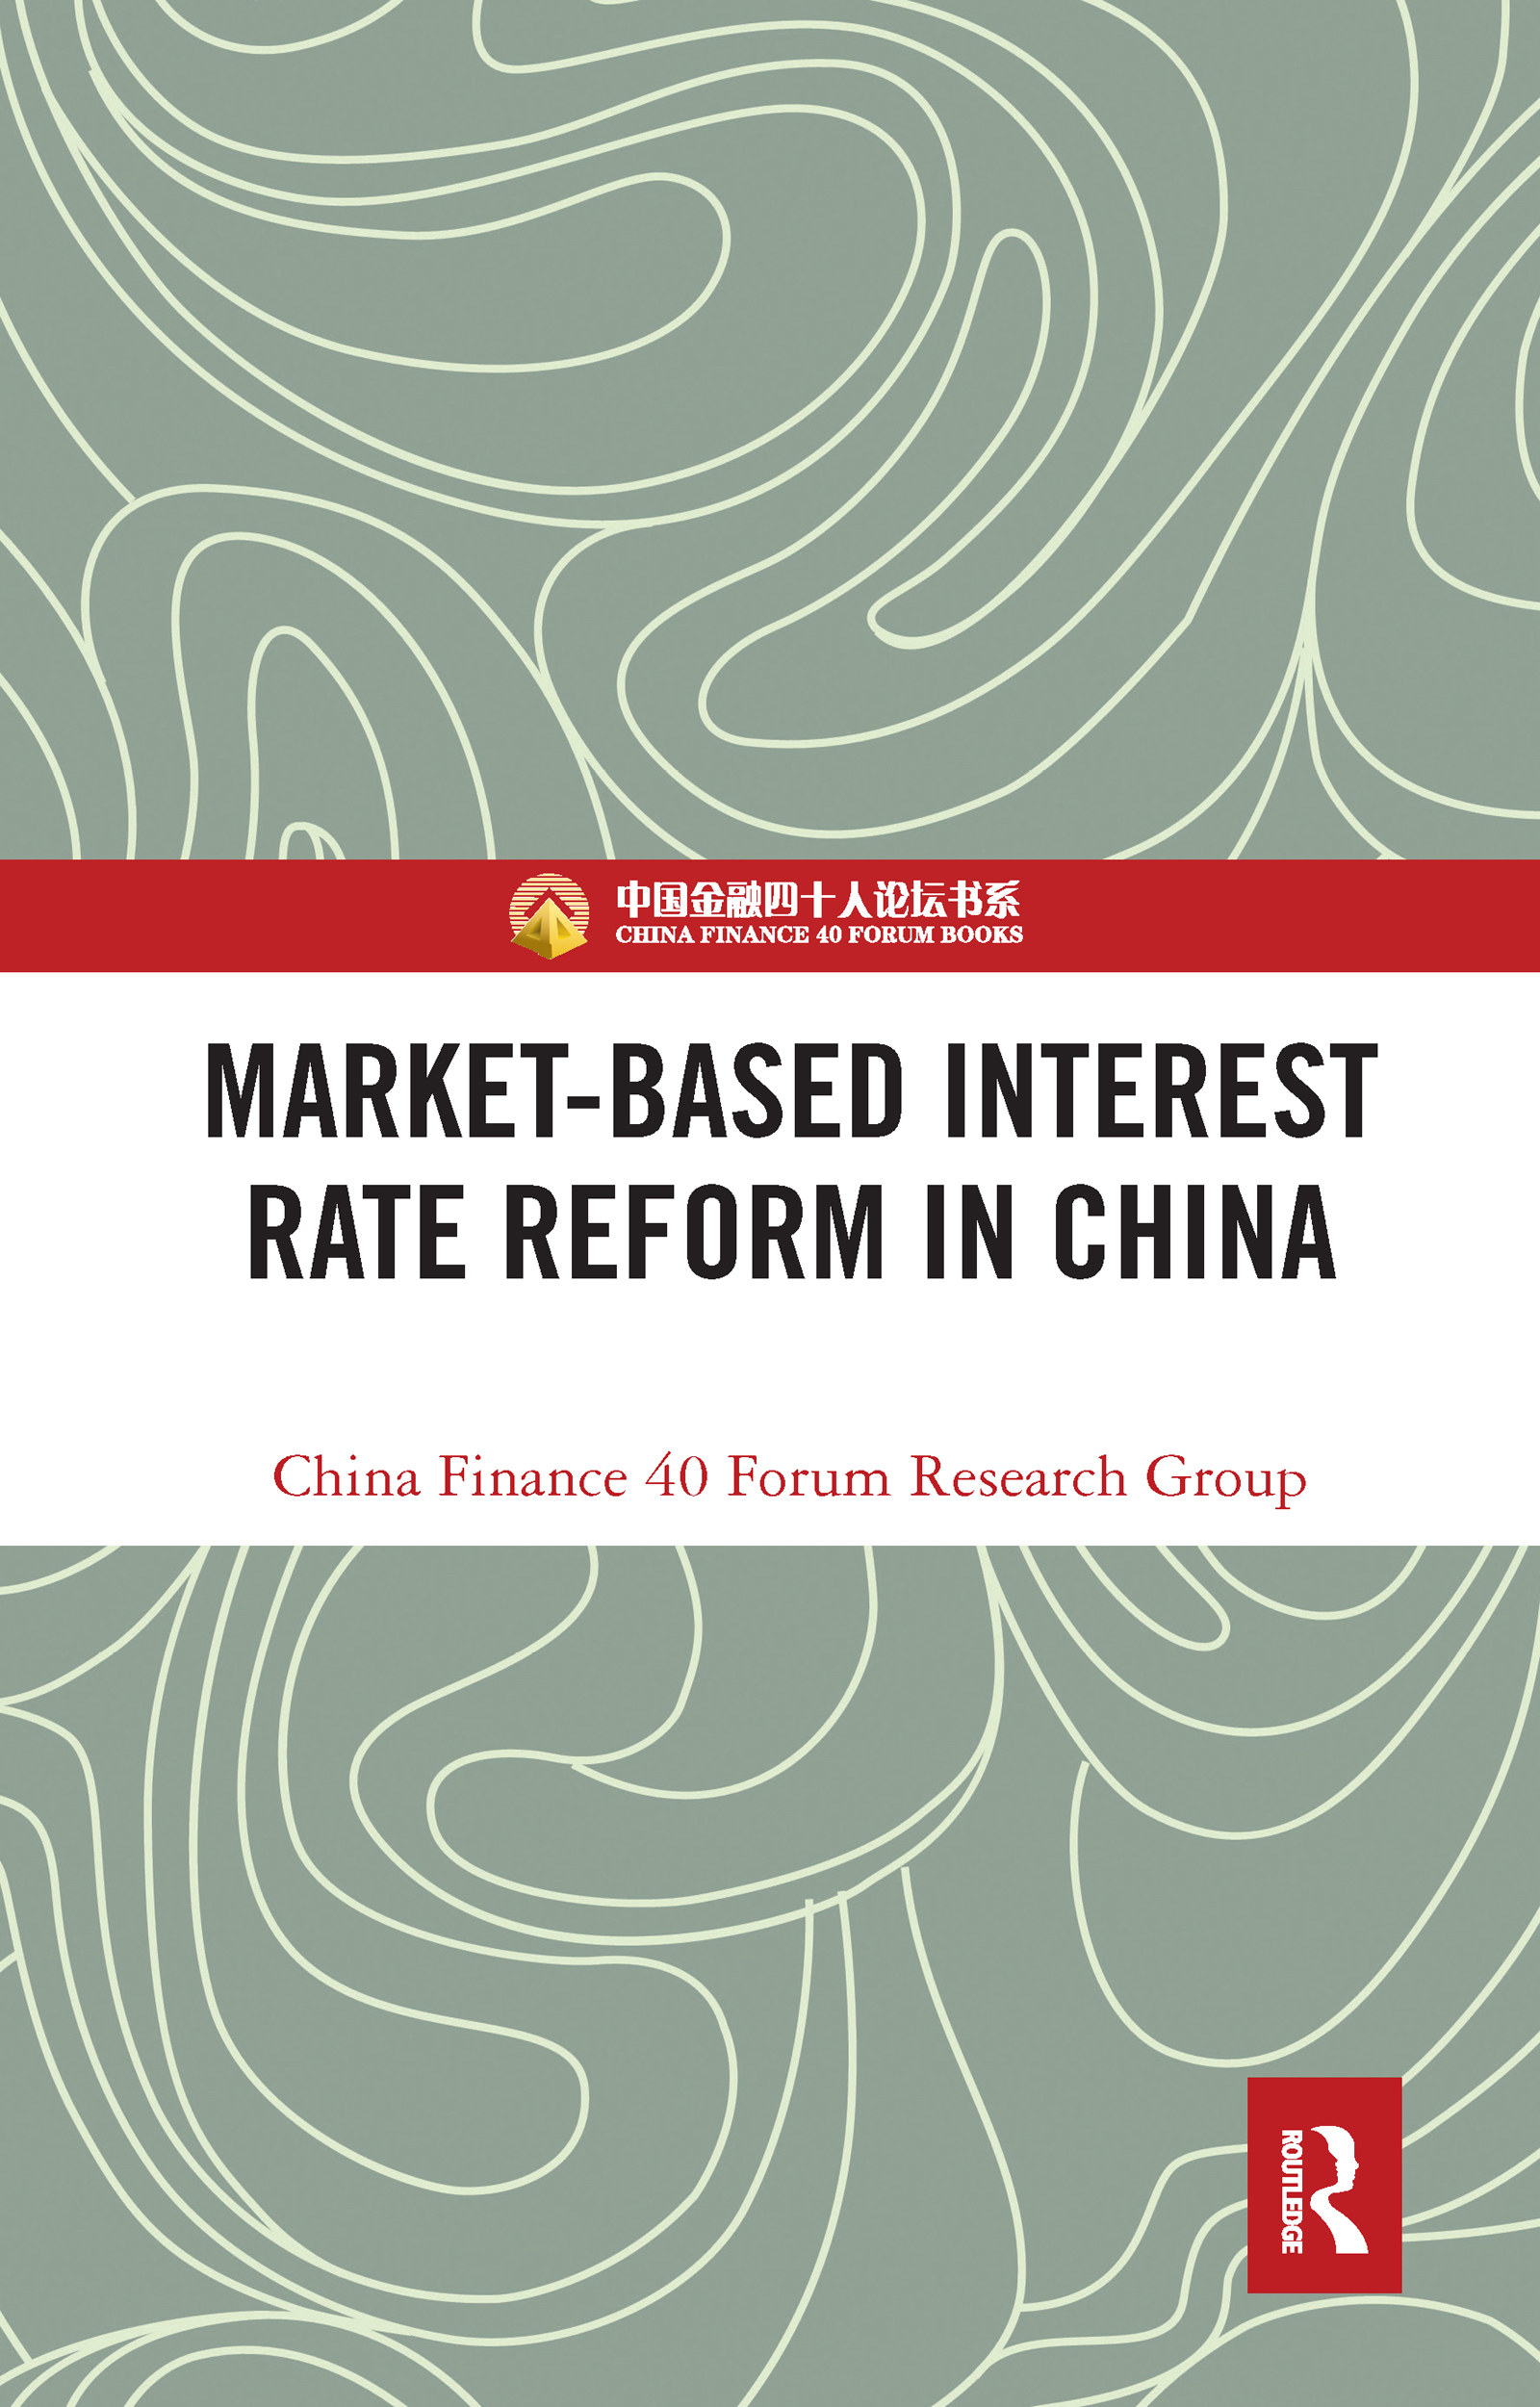 Market-Based Interest Rate Reform in China